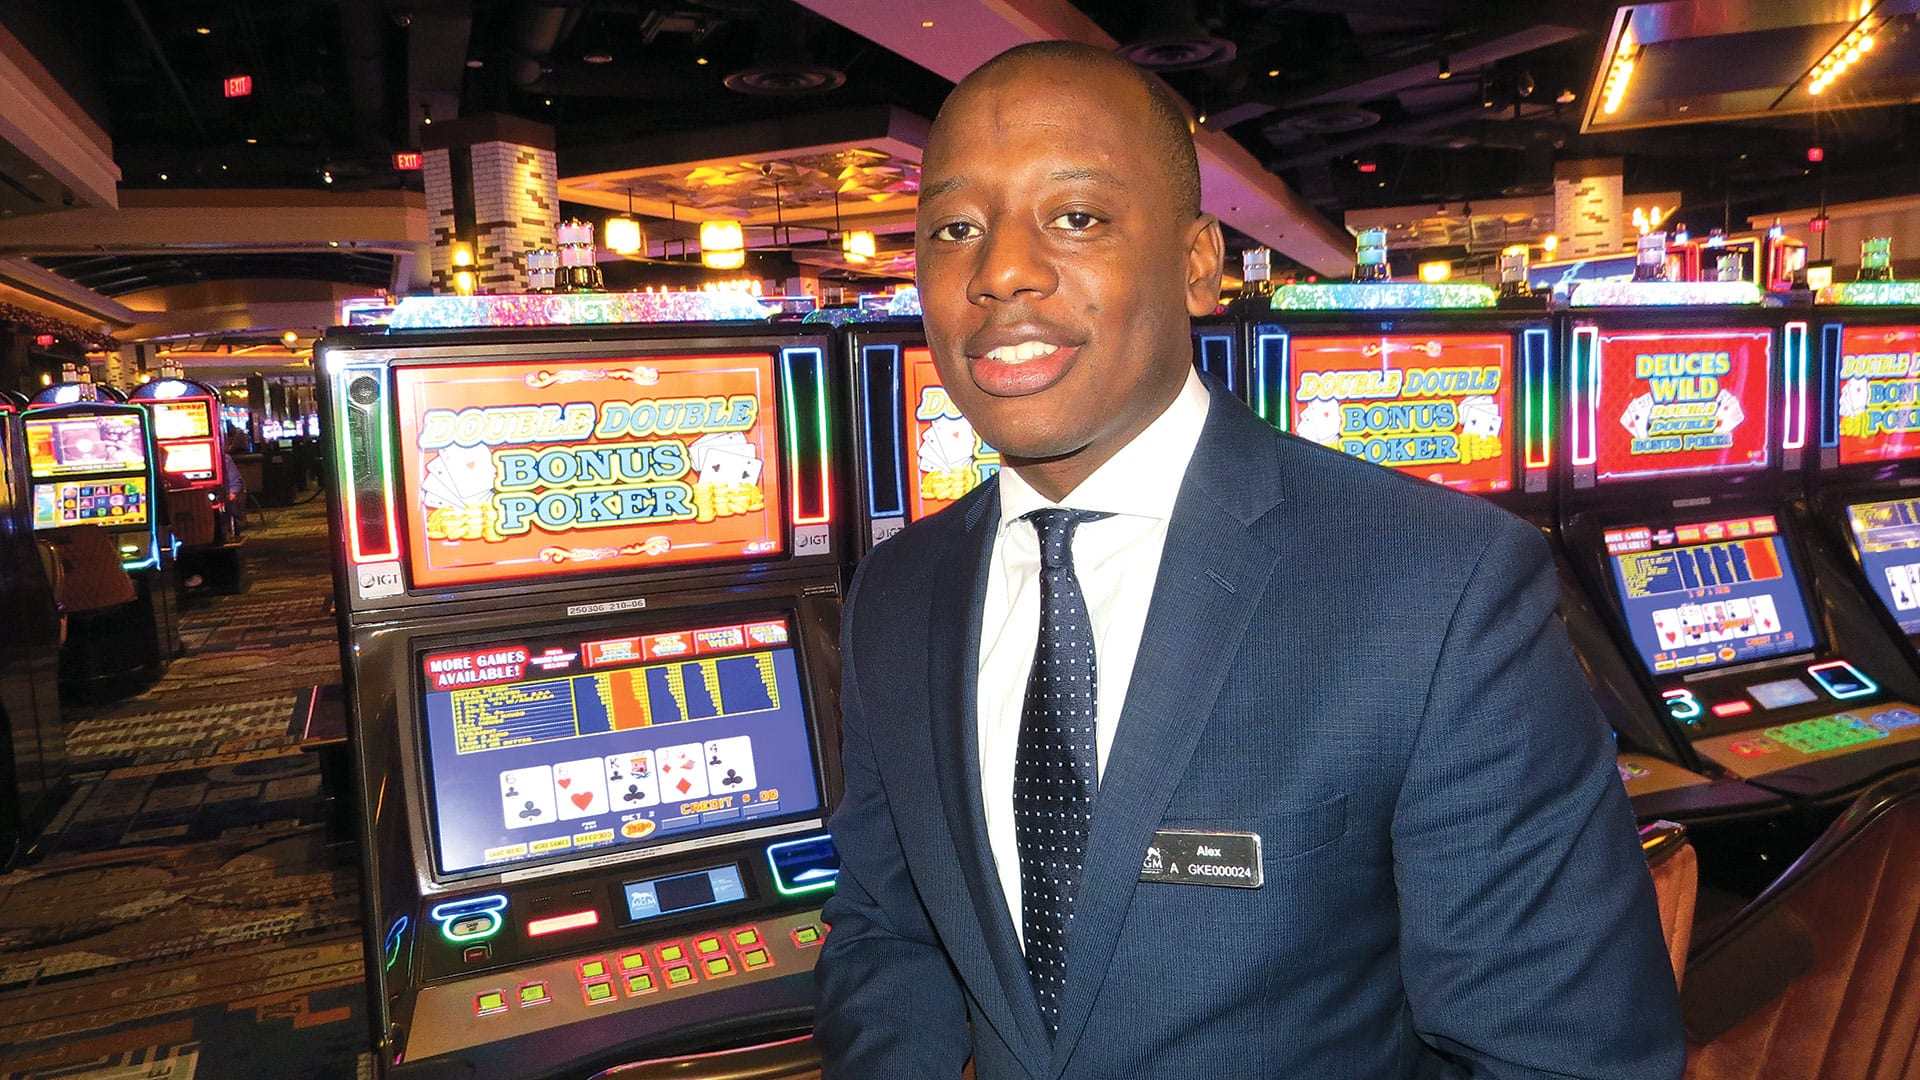 A doubling of the number of video poker games on the casino floor